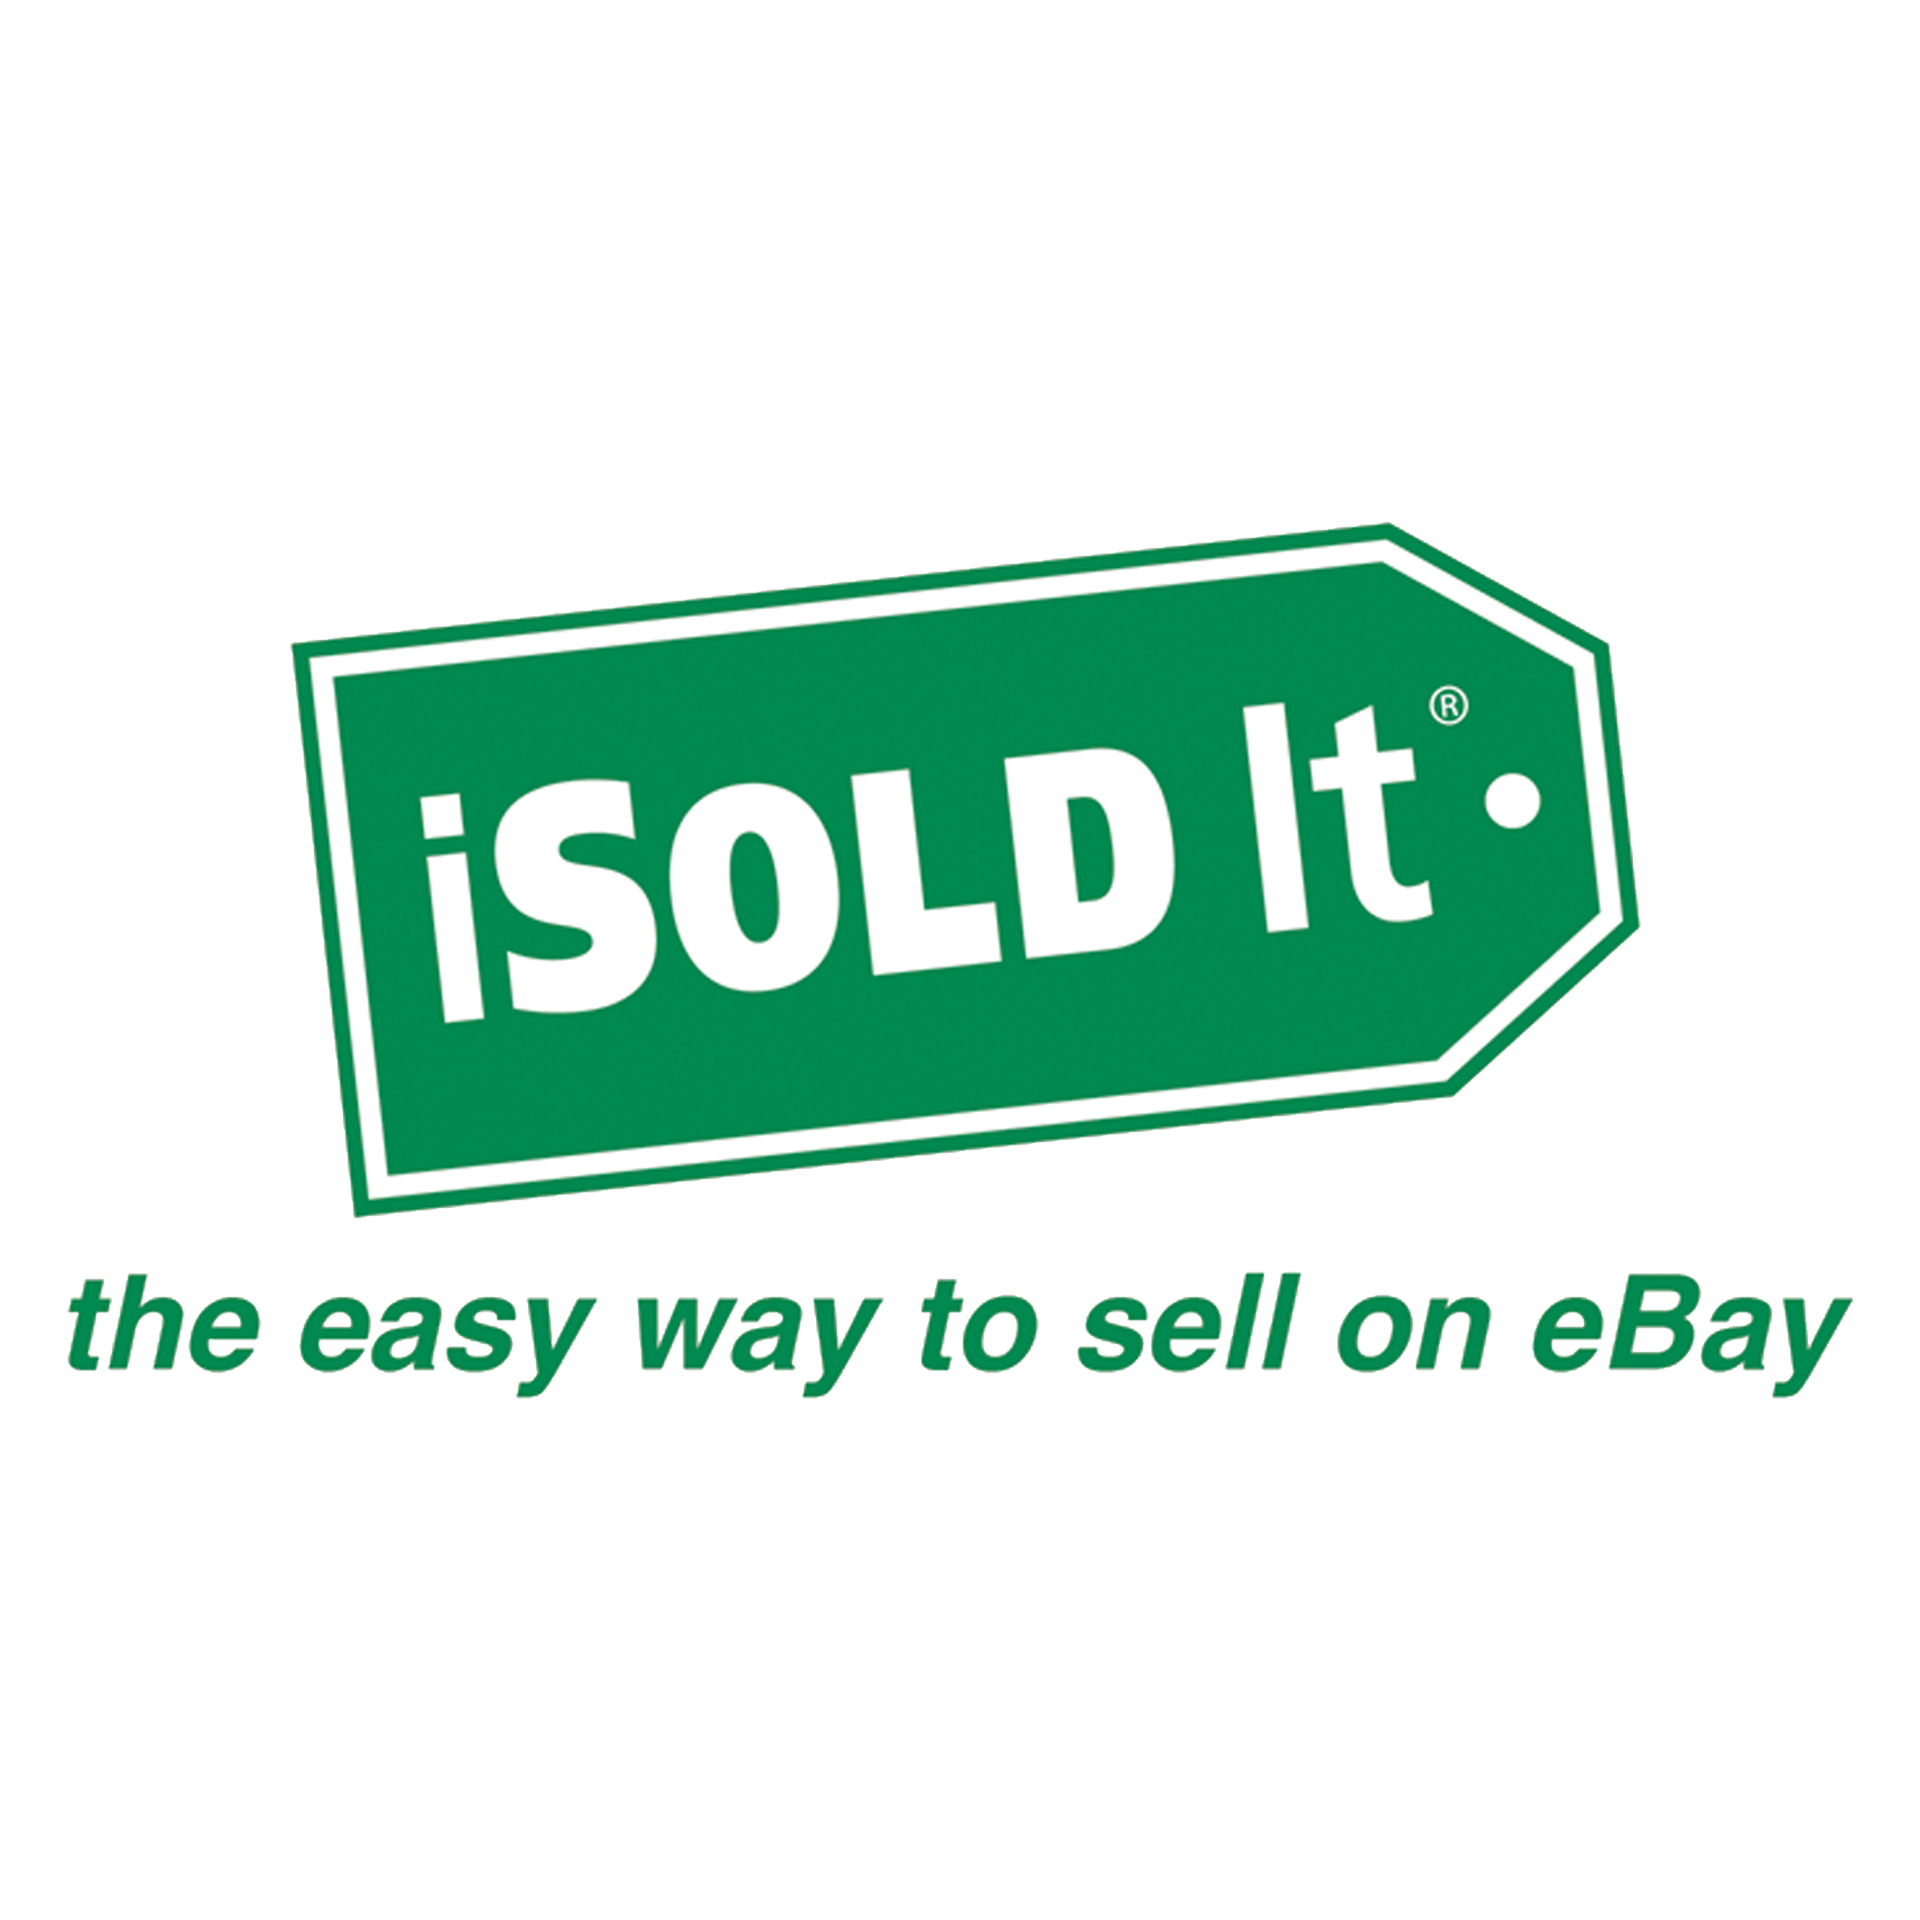 iSold It On eBay - Glendale, AZ - Discount Department Stores